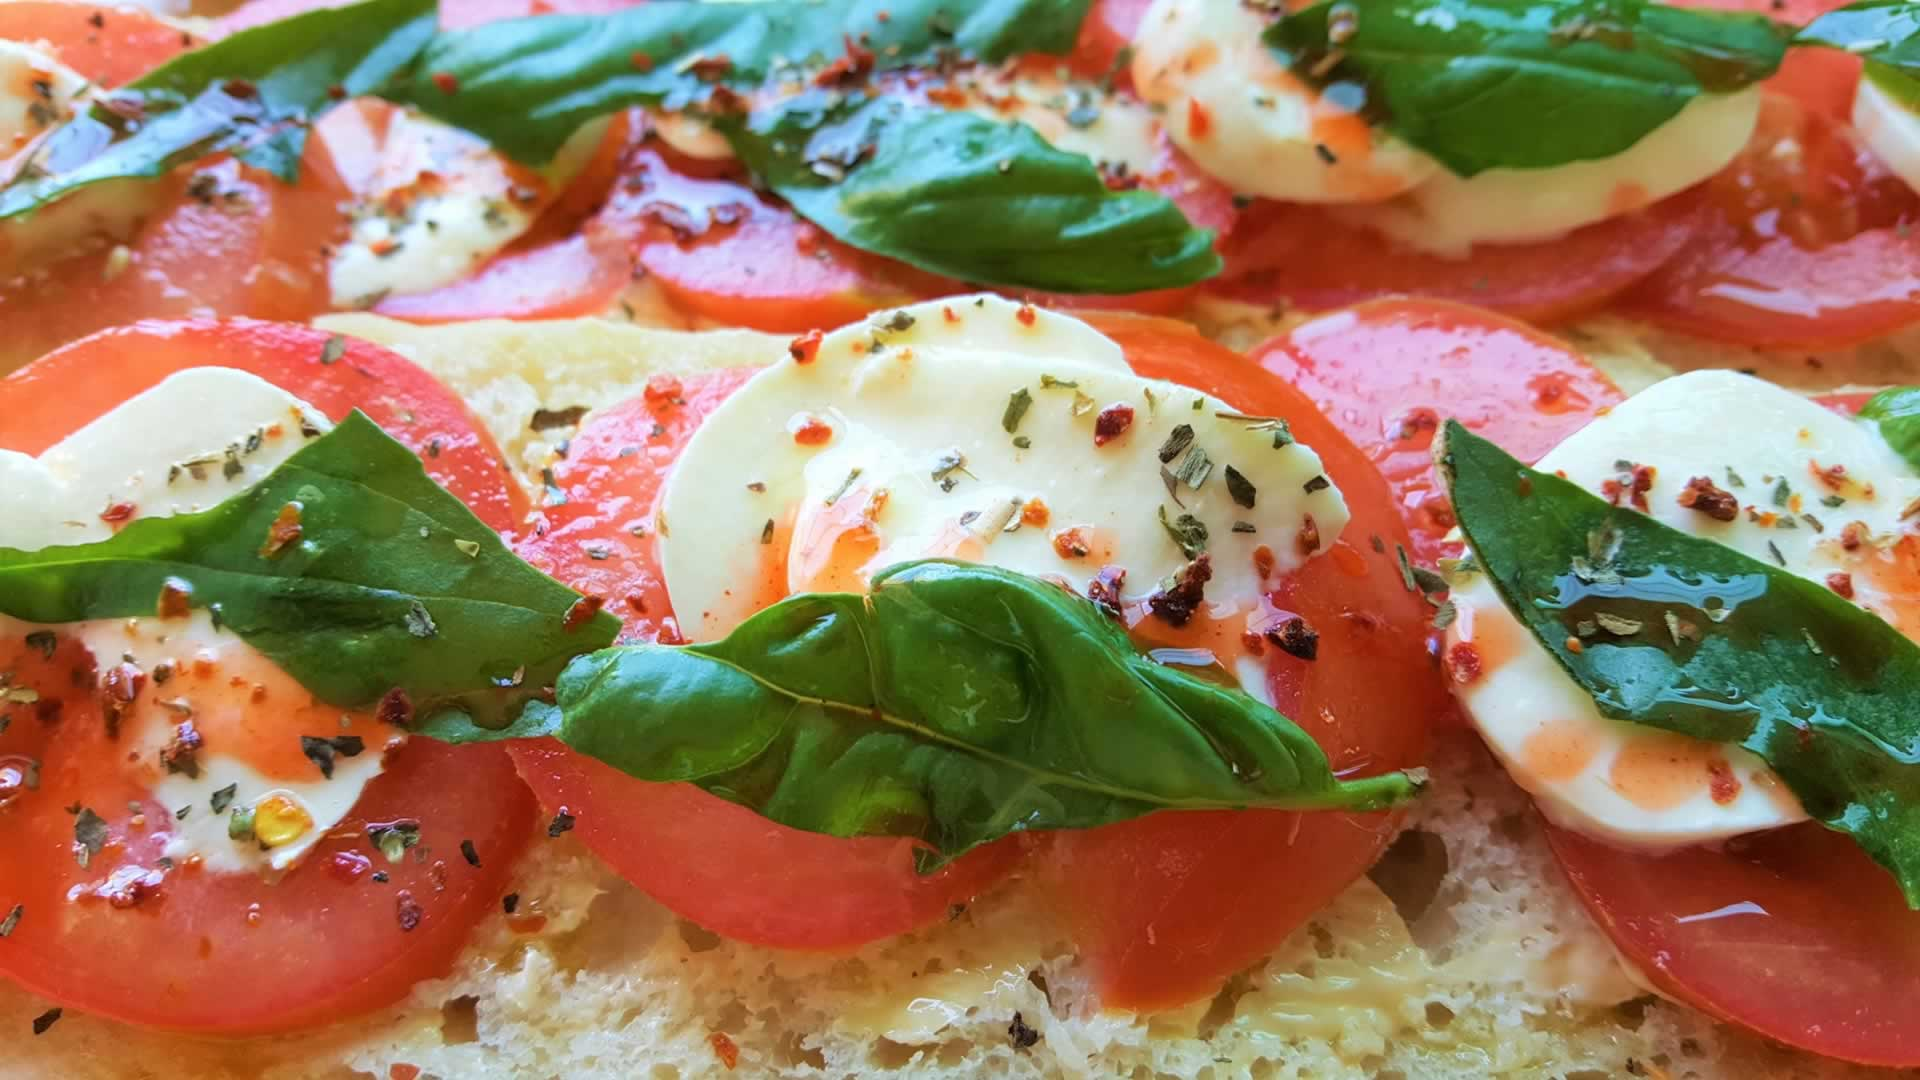 Zesty-Italian-Bruschetta-Seasoning-Sprinkle-with-tomato-bocconcini-and-basil